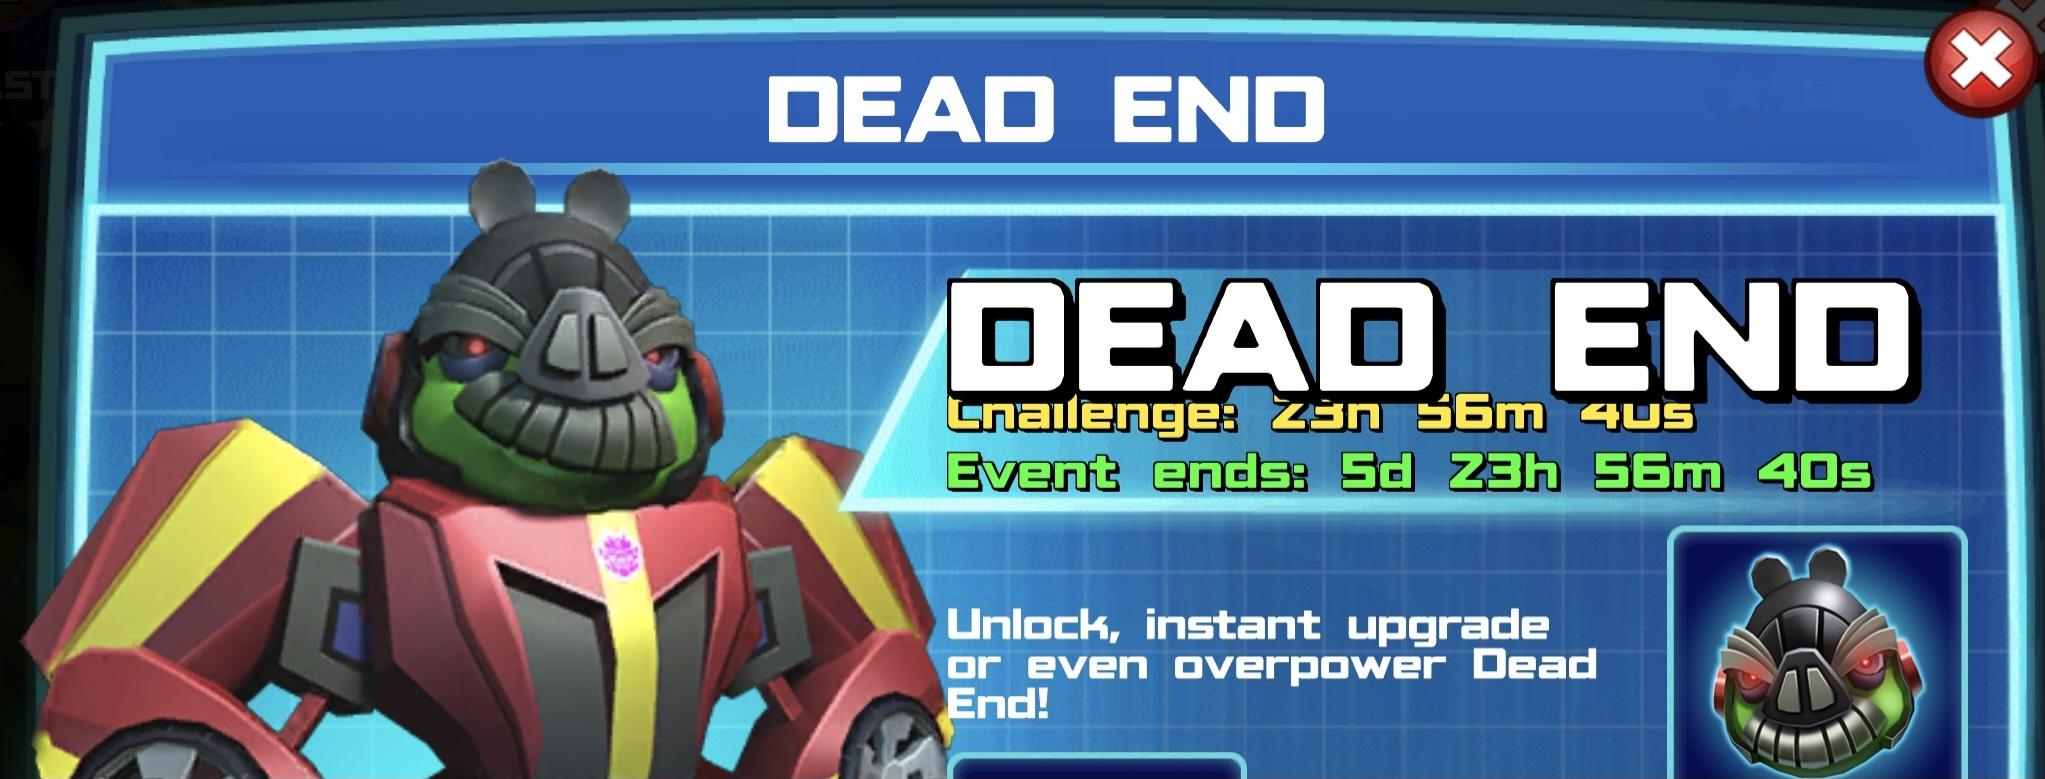 The event banner for Dead End